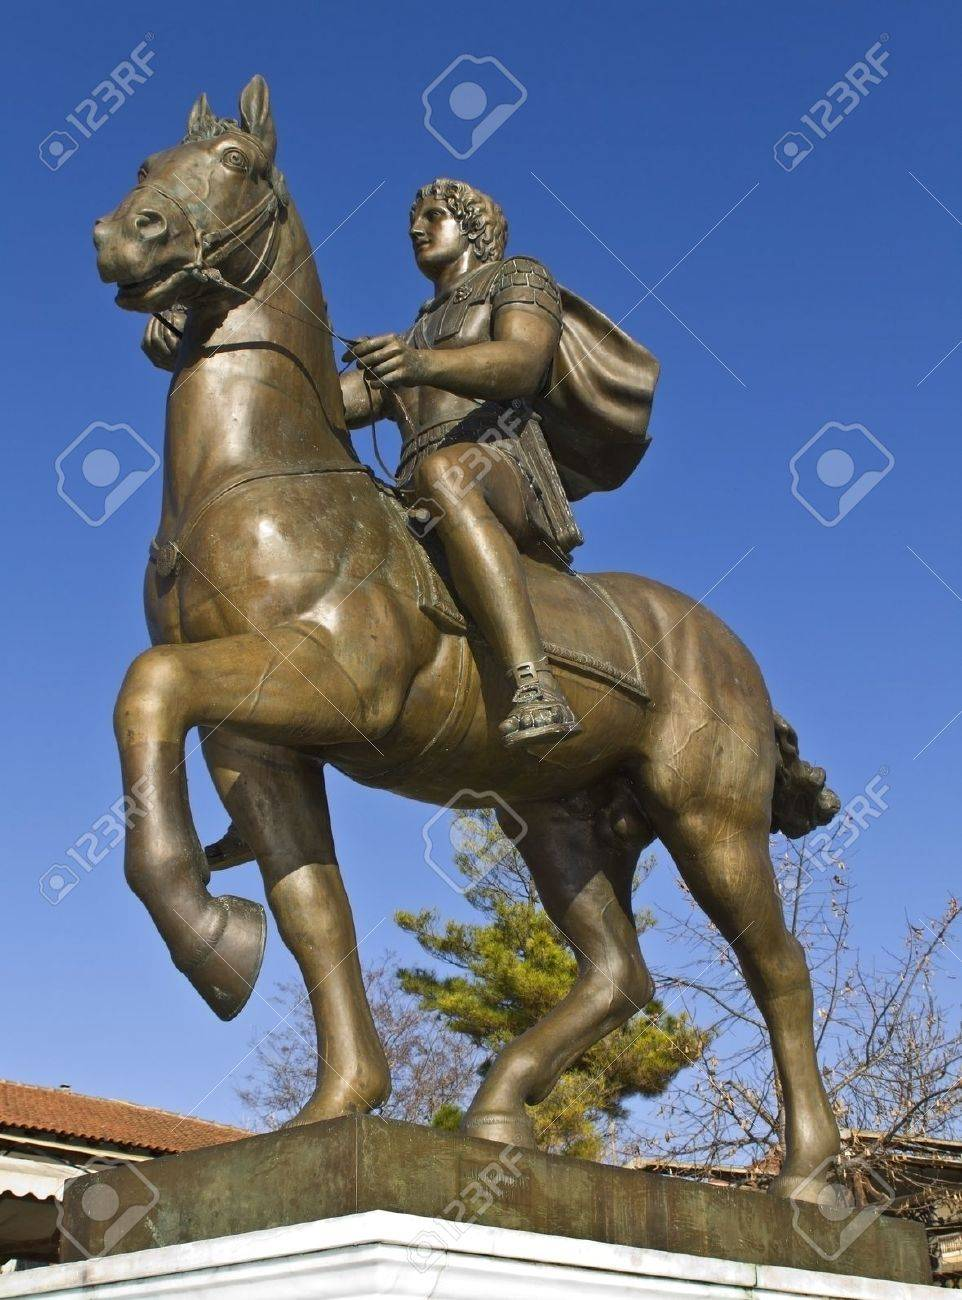 Alexander the Great statue at ancient Pella, Greece Stock Photo - 15926853